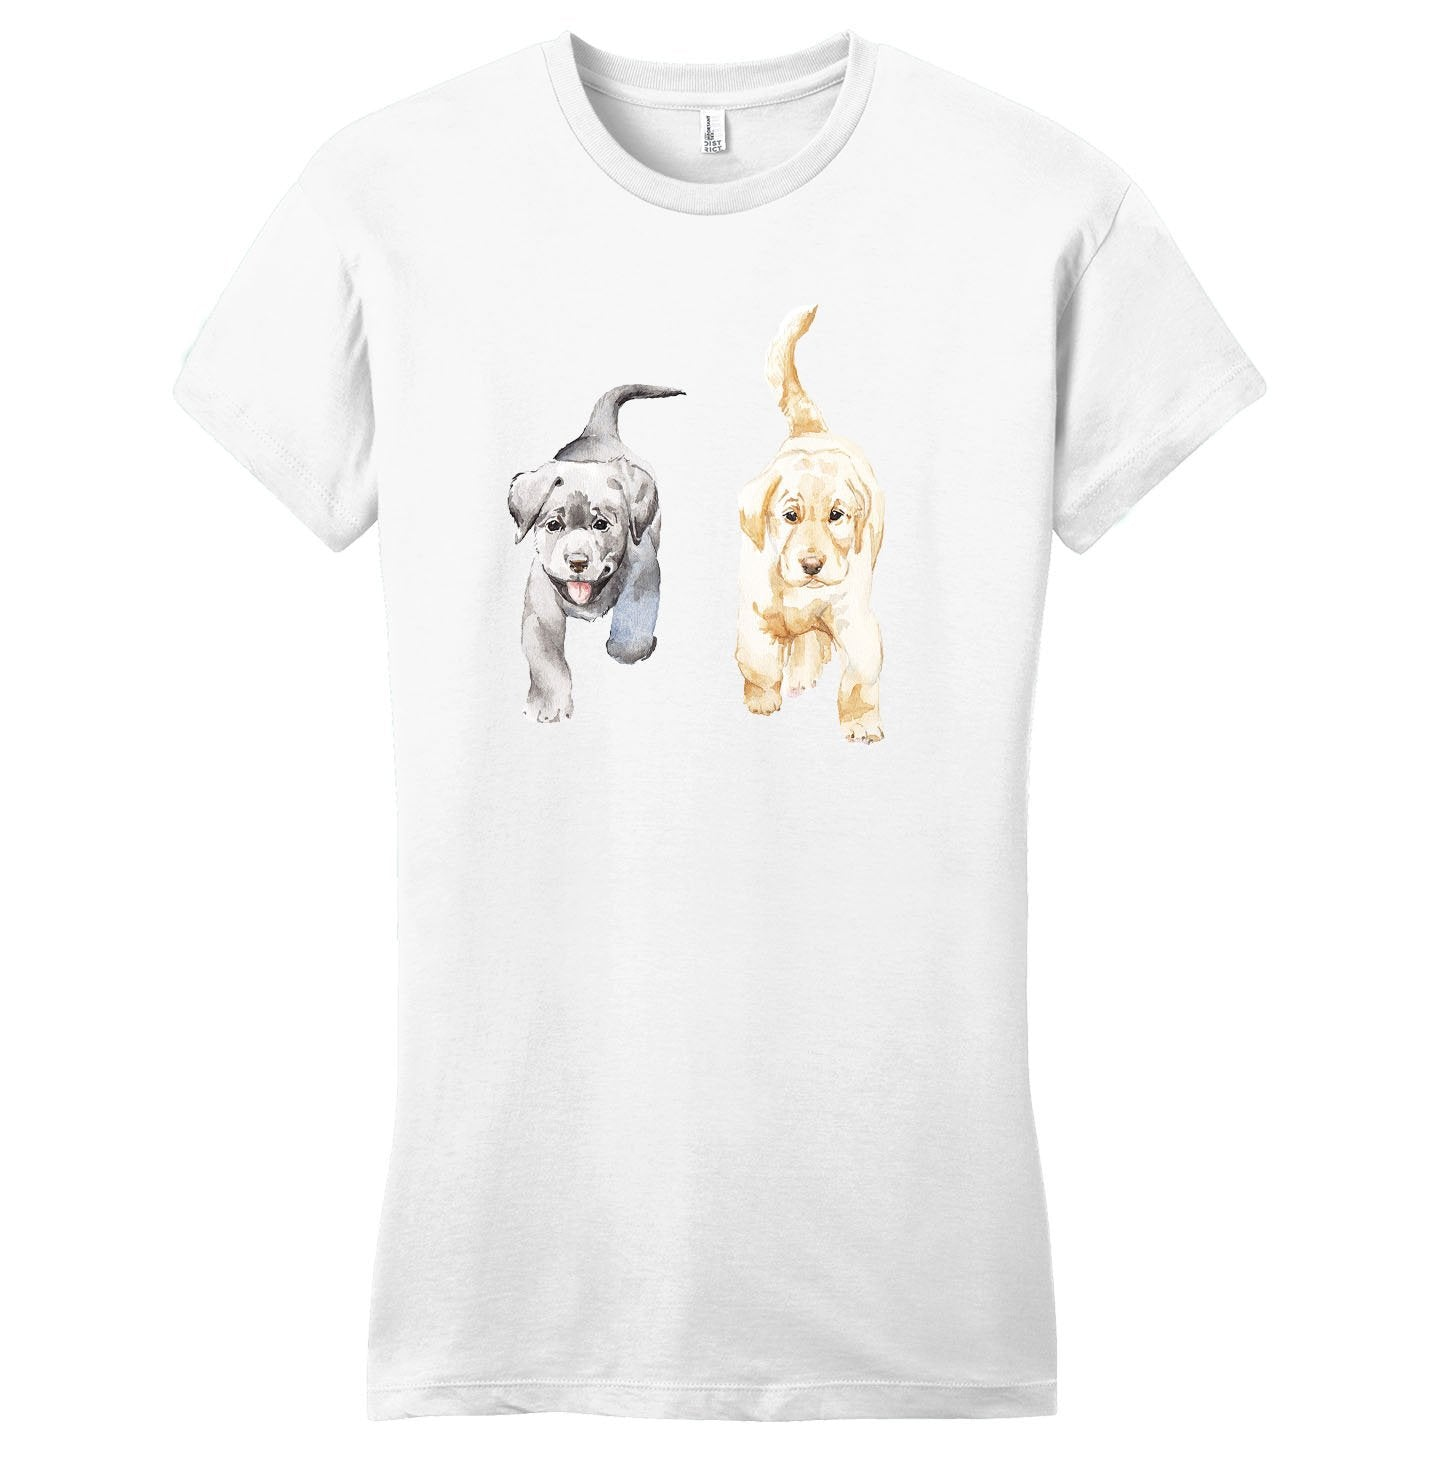 Two Lab Puppies Running - Women's Fitted T-Shirt